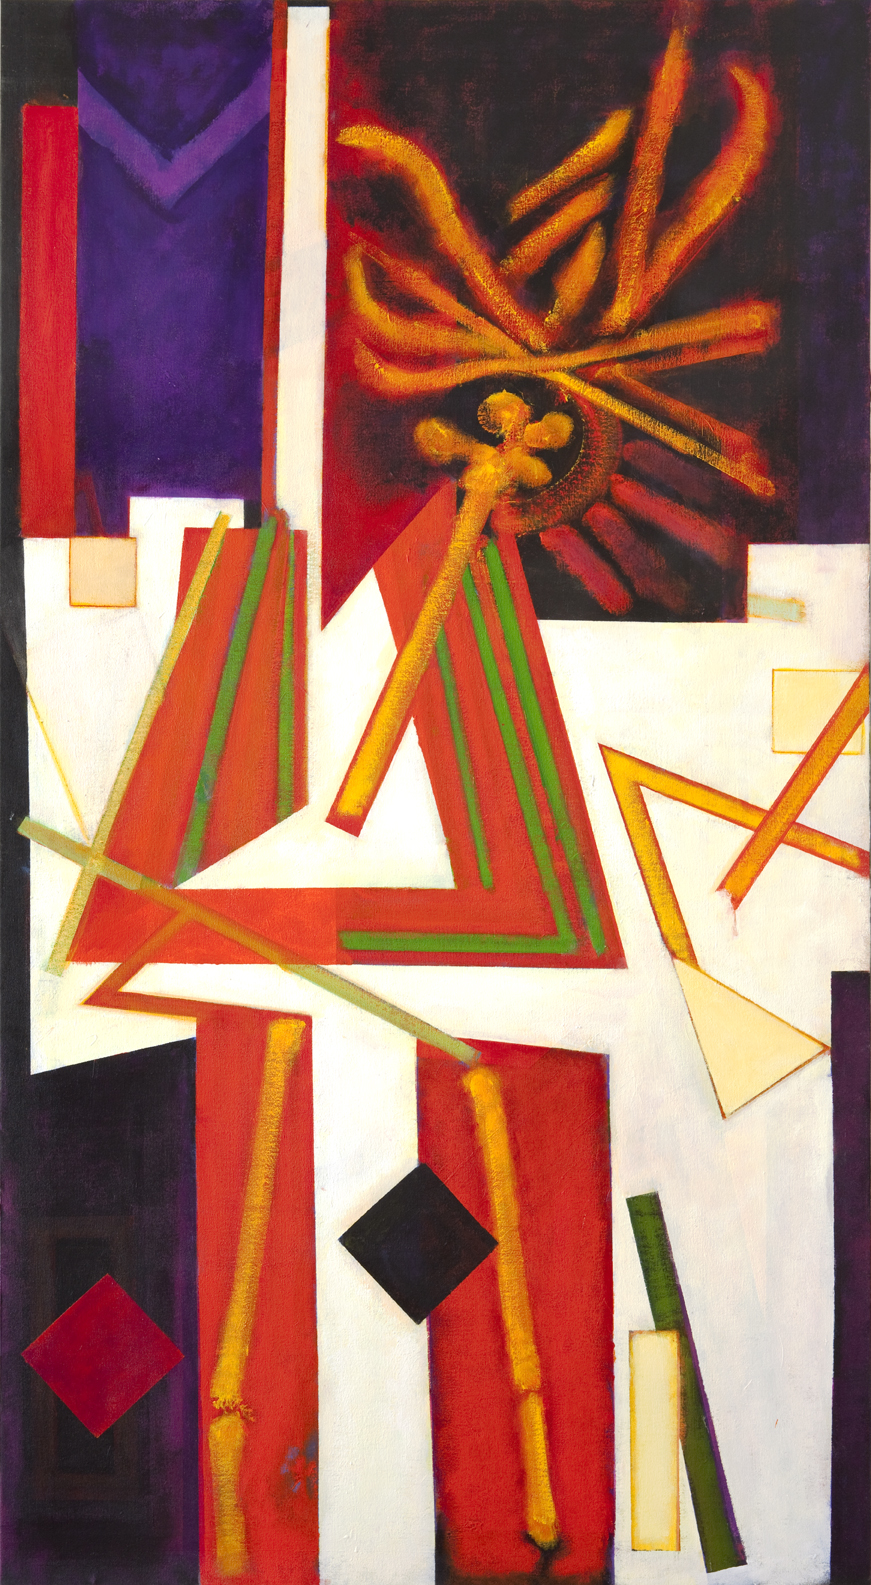 Abstract image with red, green, purple, orange, yellow, and white shapes